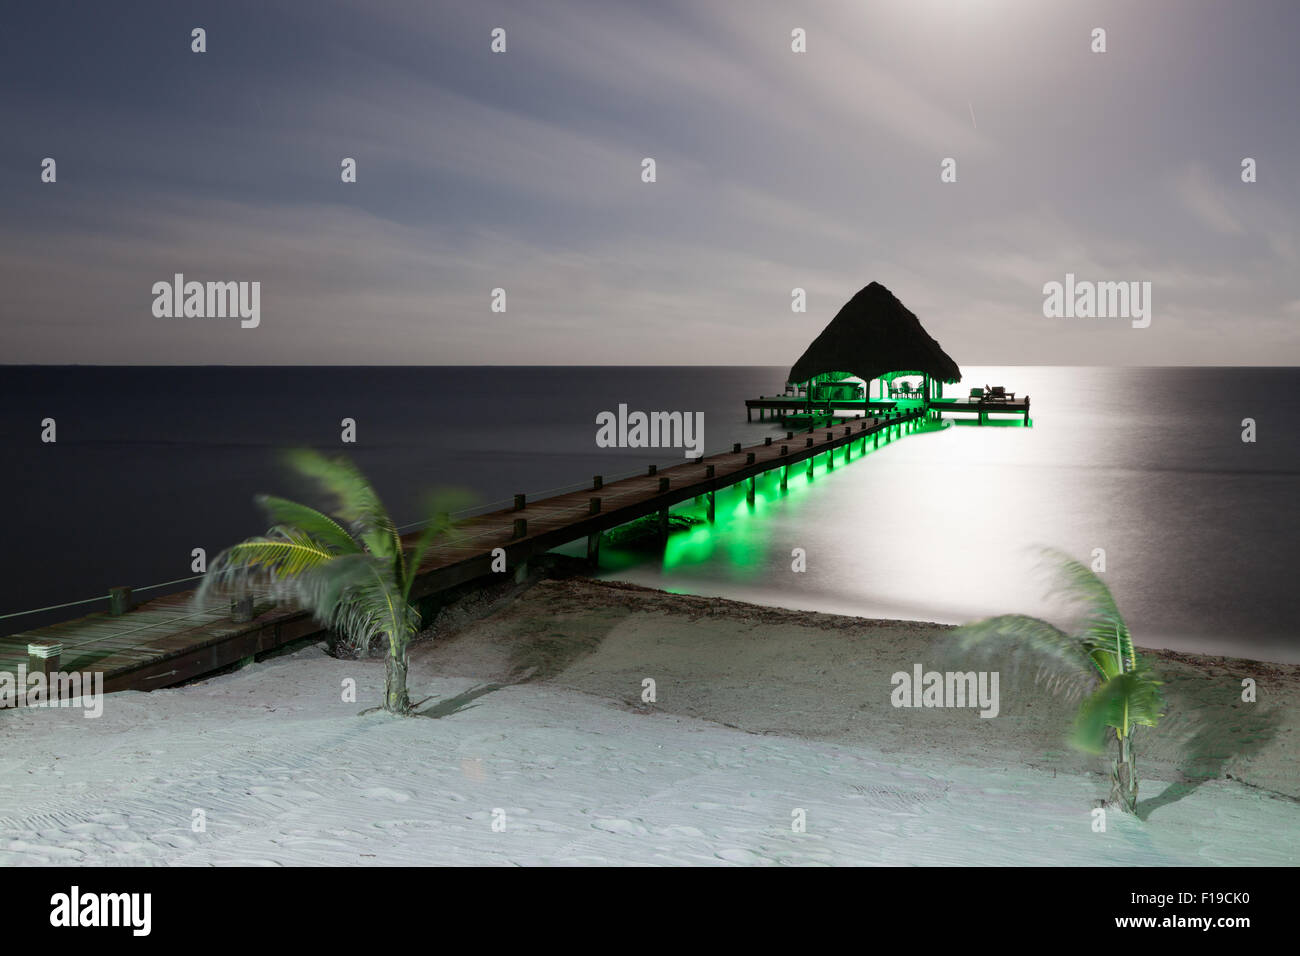 A long exposure of a beach with a dock and small palm trees lit by the moonlight and green lights under the dock. & A long exposure of a beach with a dock and small palm trees lit by ...